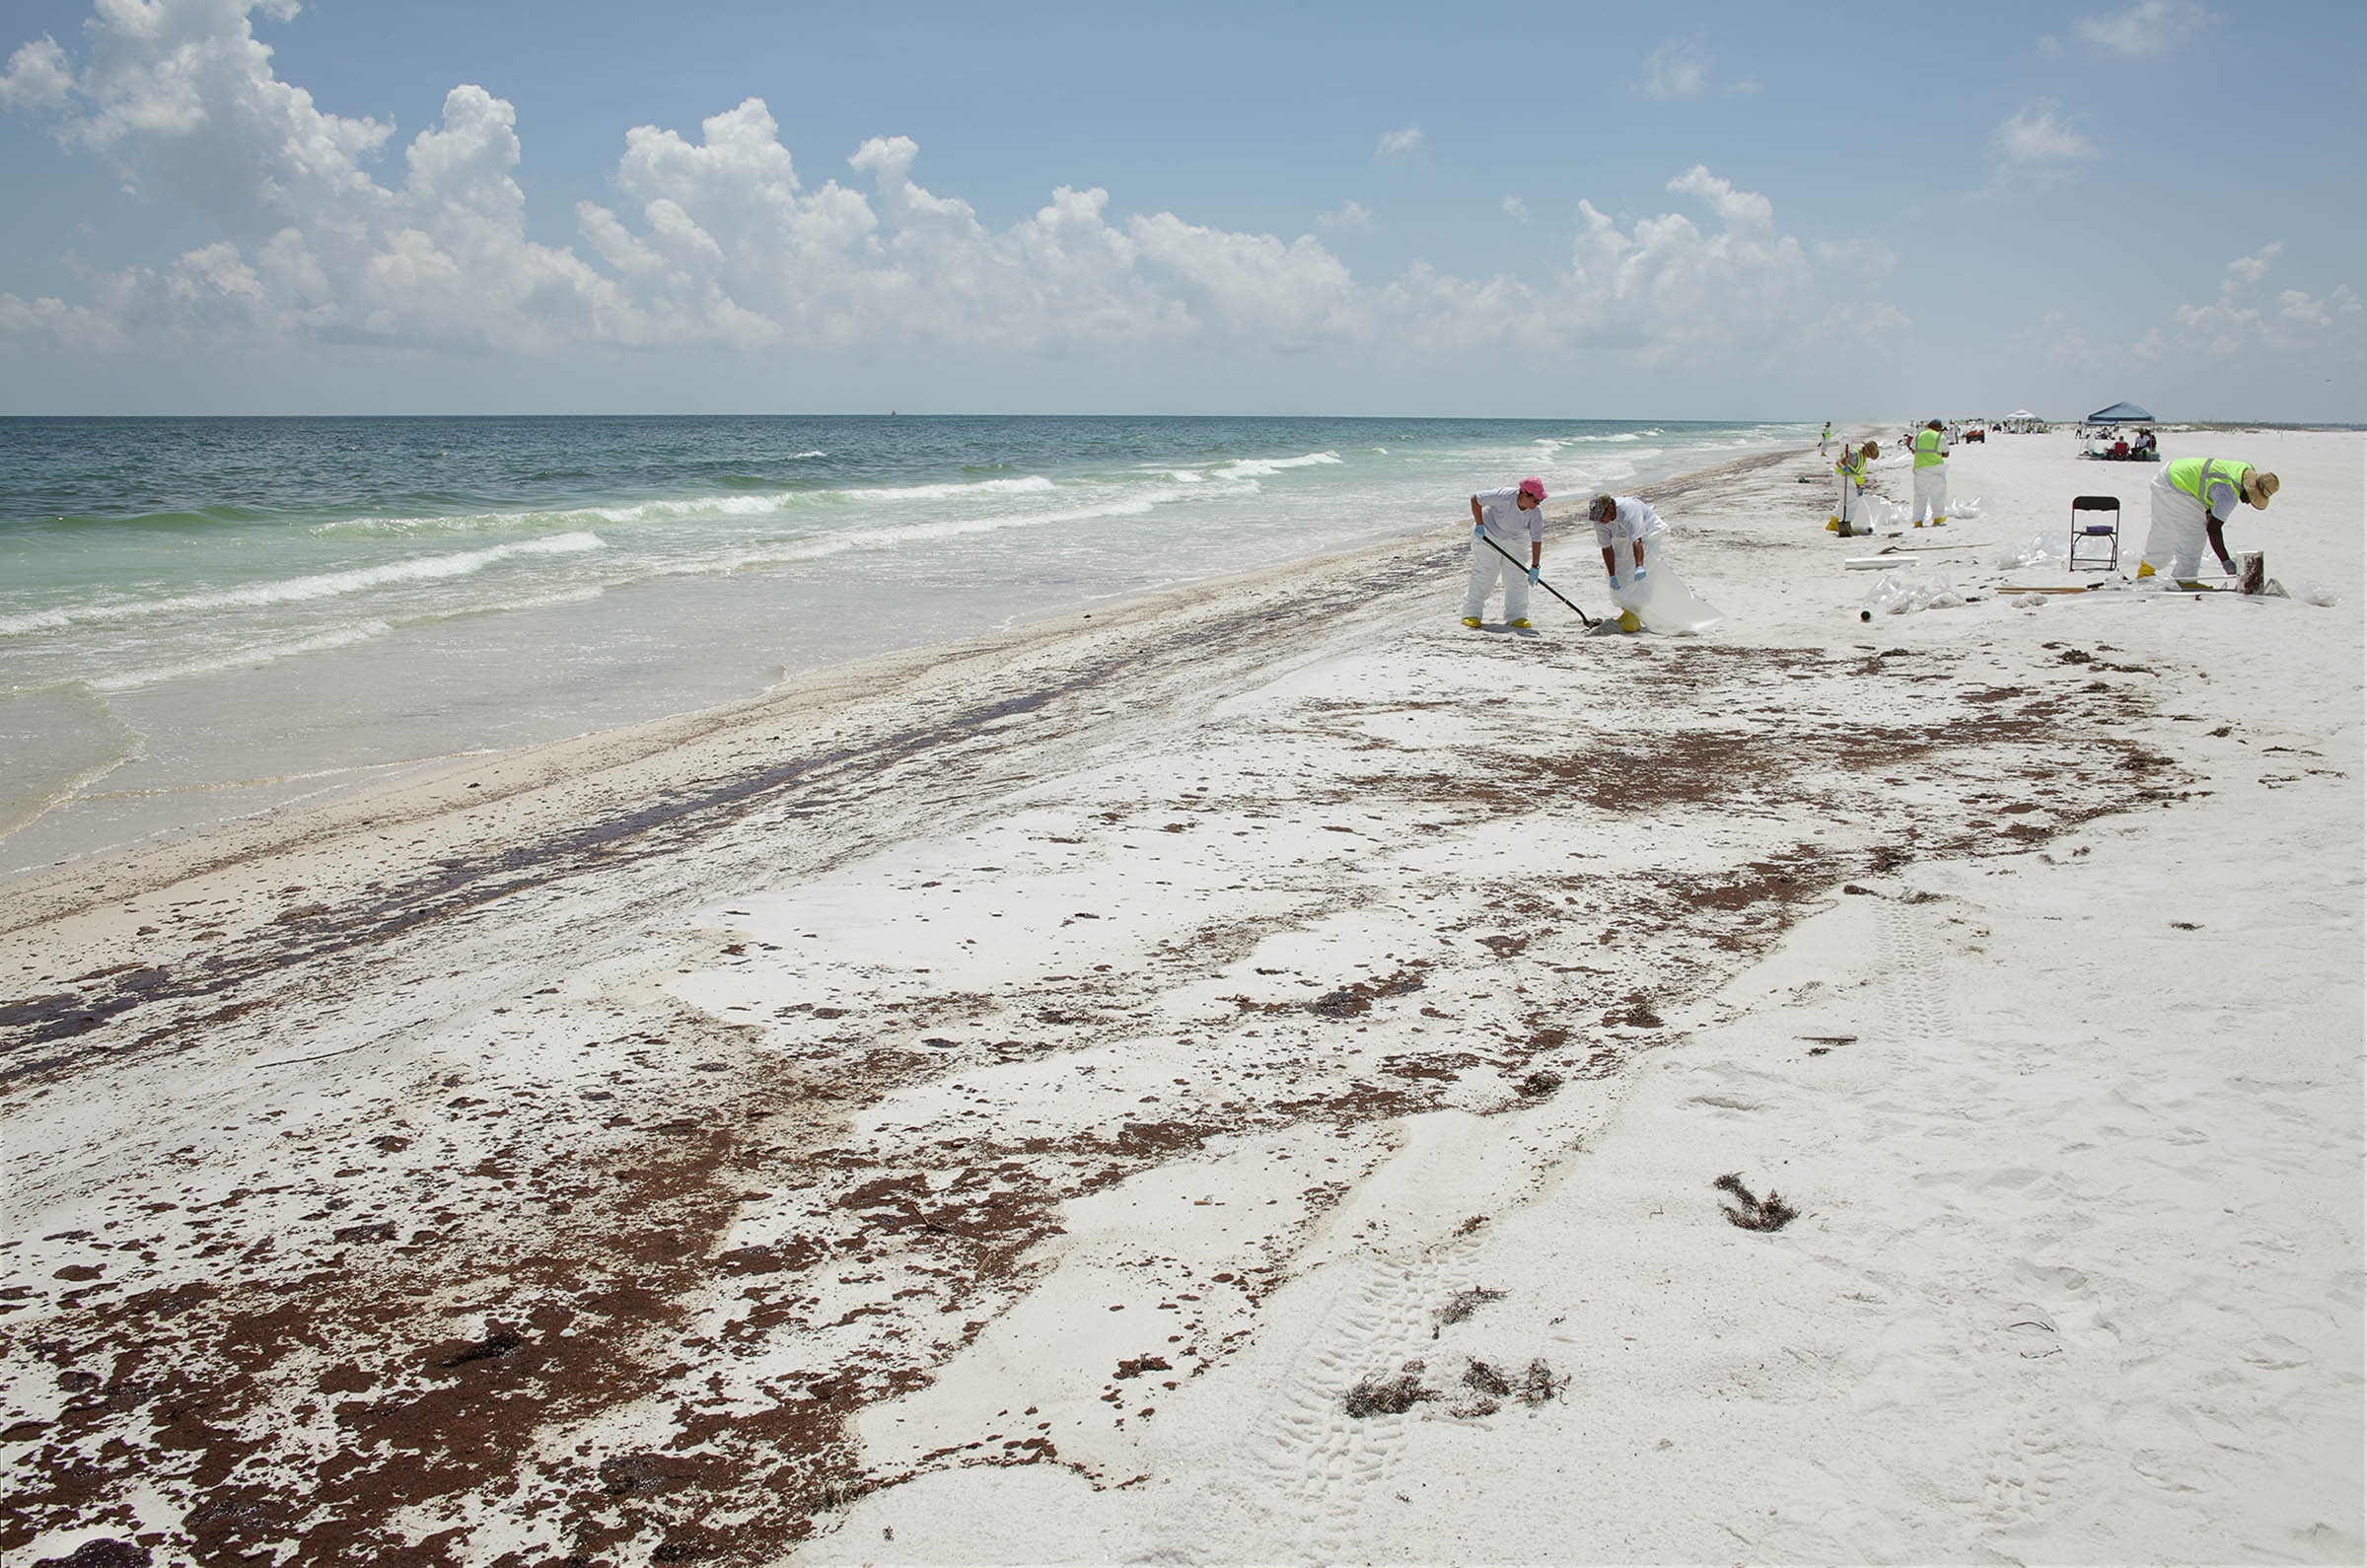 Clean-up Workers, National Sea Shore Park, Santa Rosa Island, Florida 2010